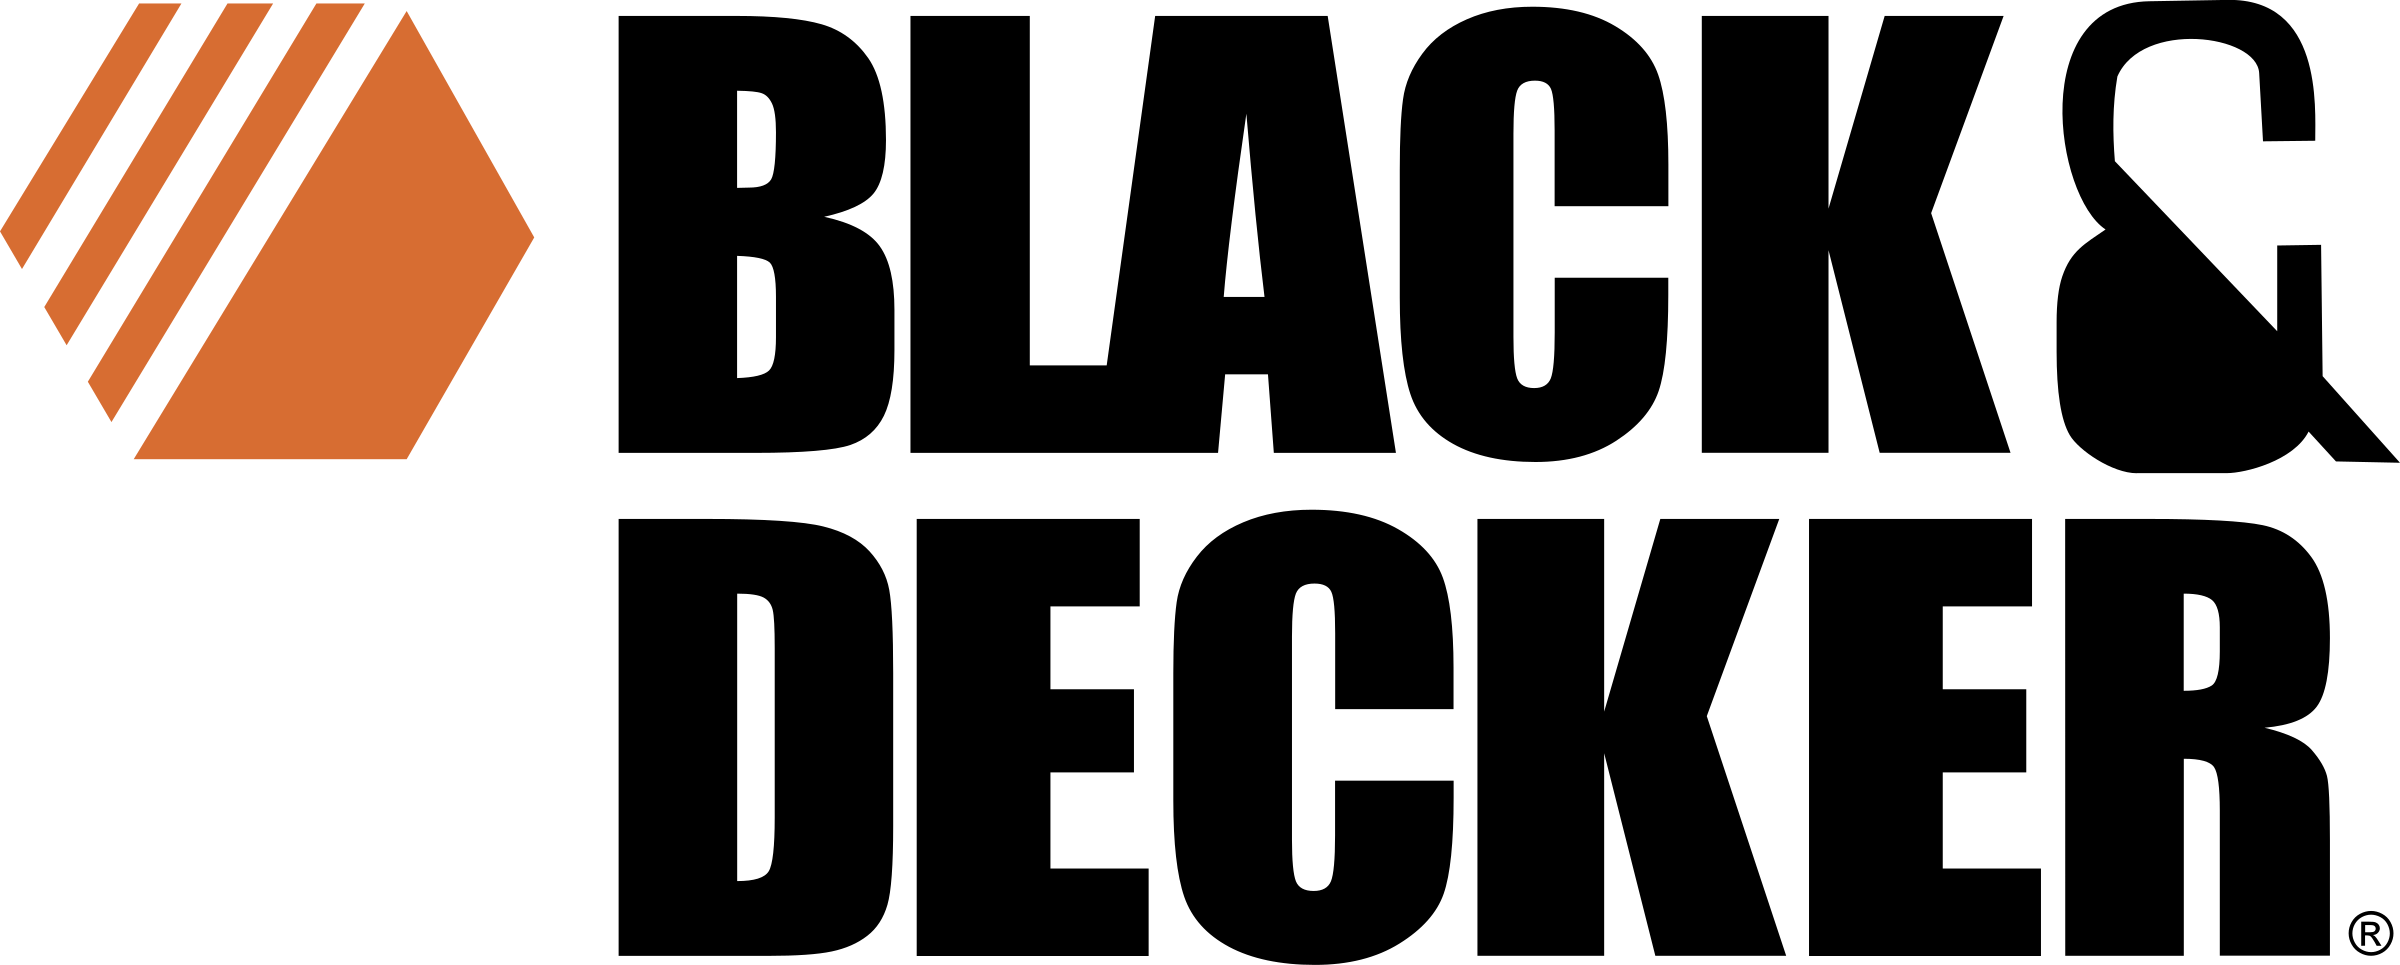 black-decker-3-logo-png-transparent.png